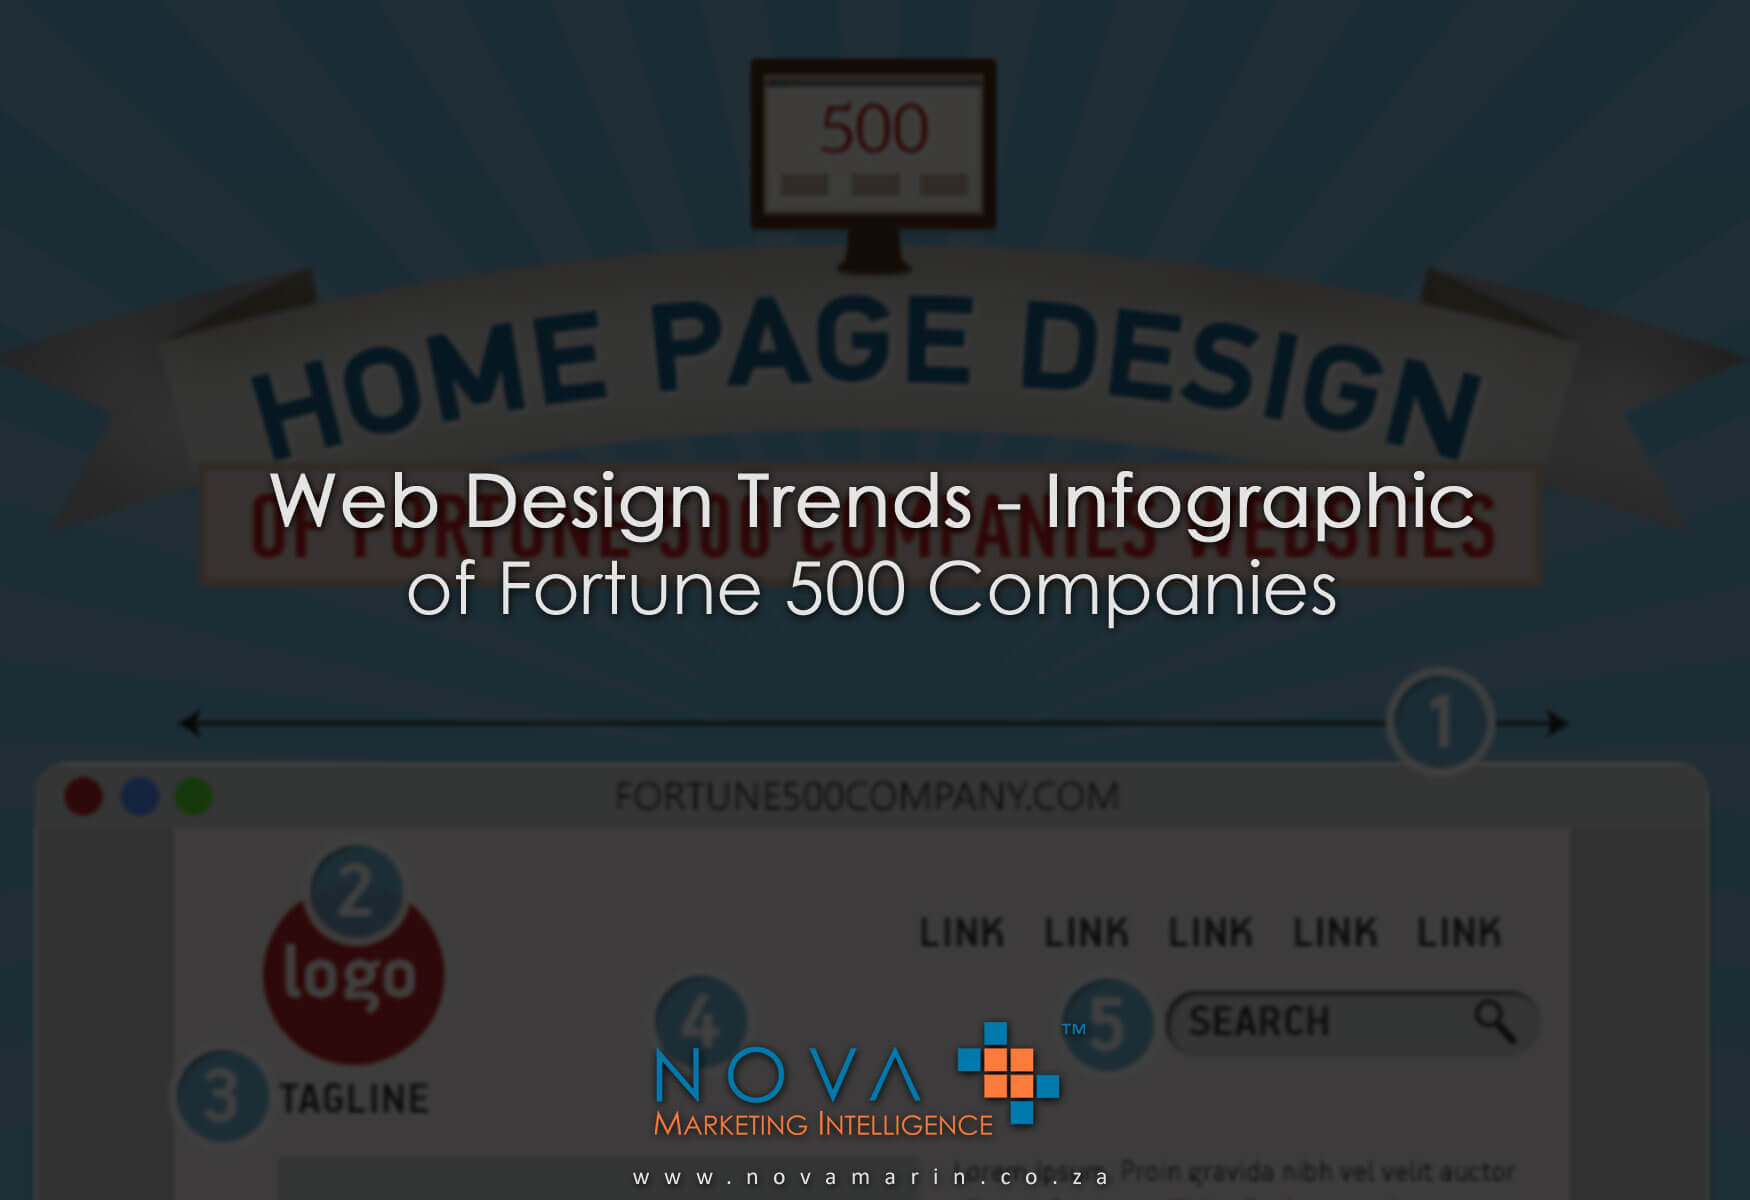 Web Design Trends – Infographic of Fortune 500 Companies